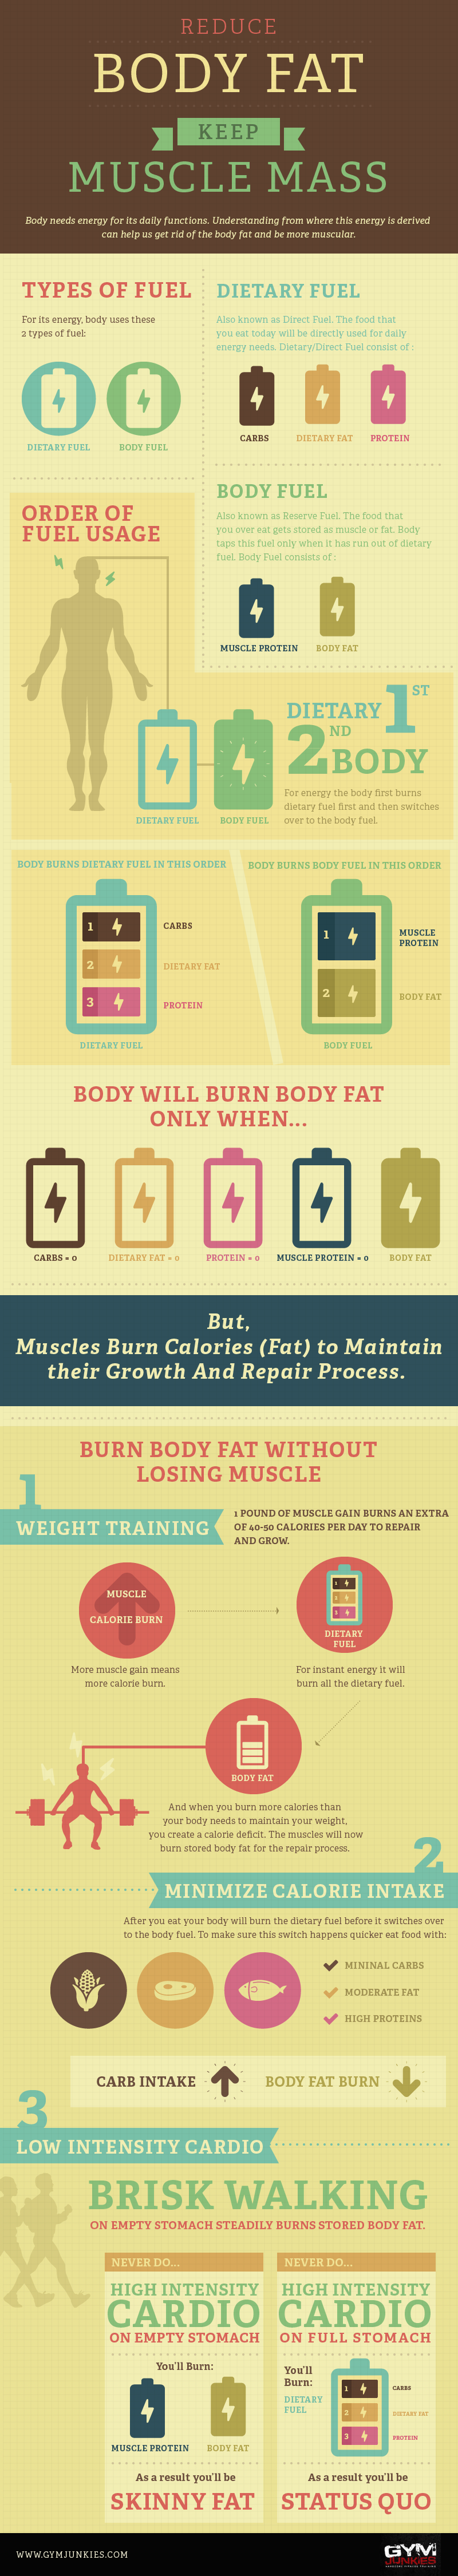 best way to loose fat